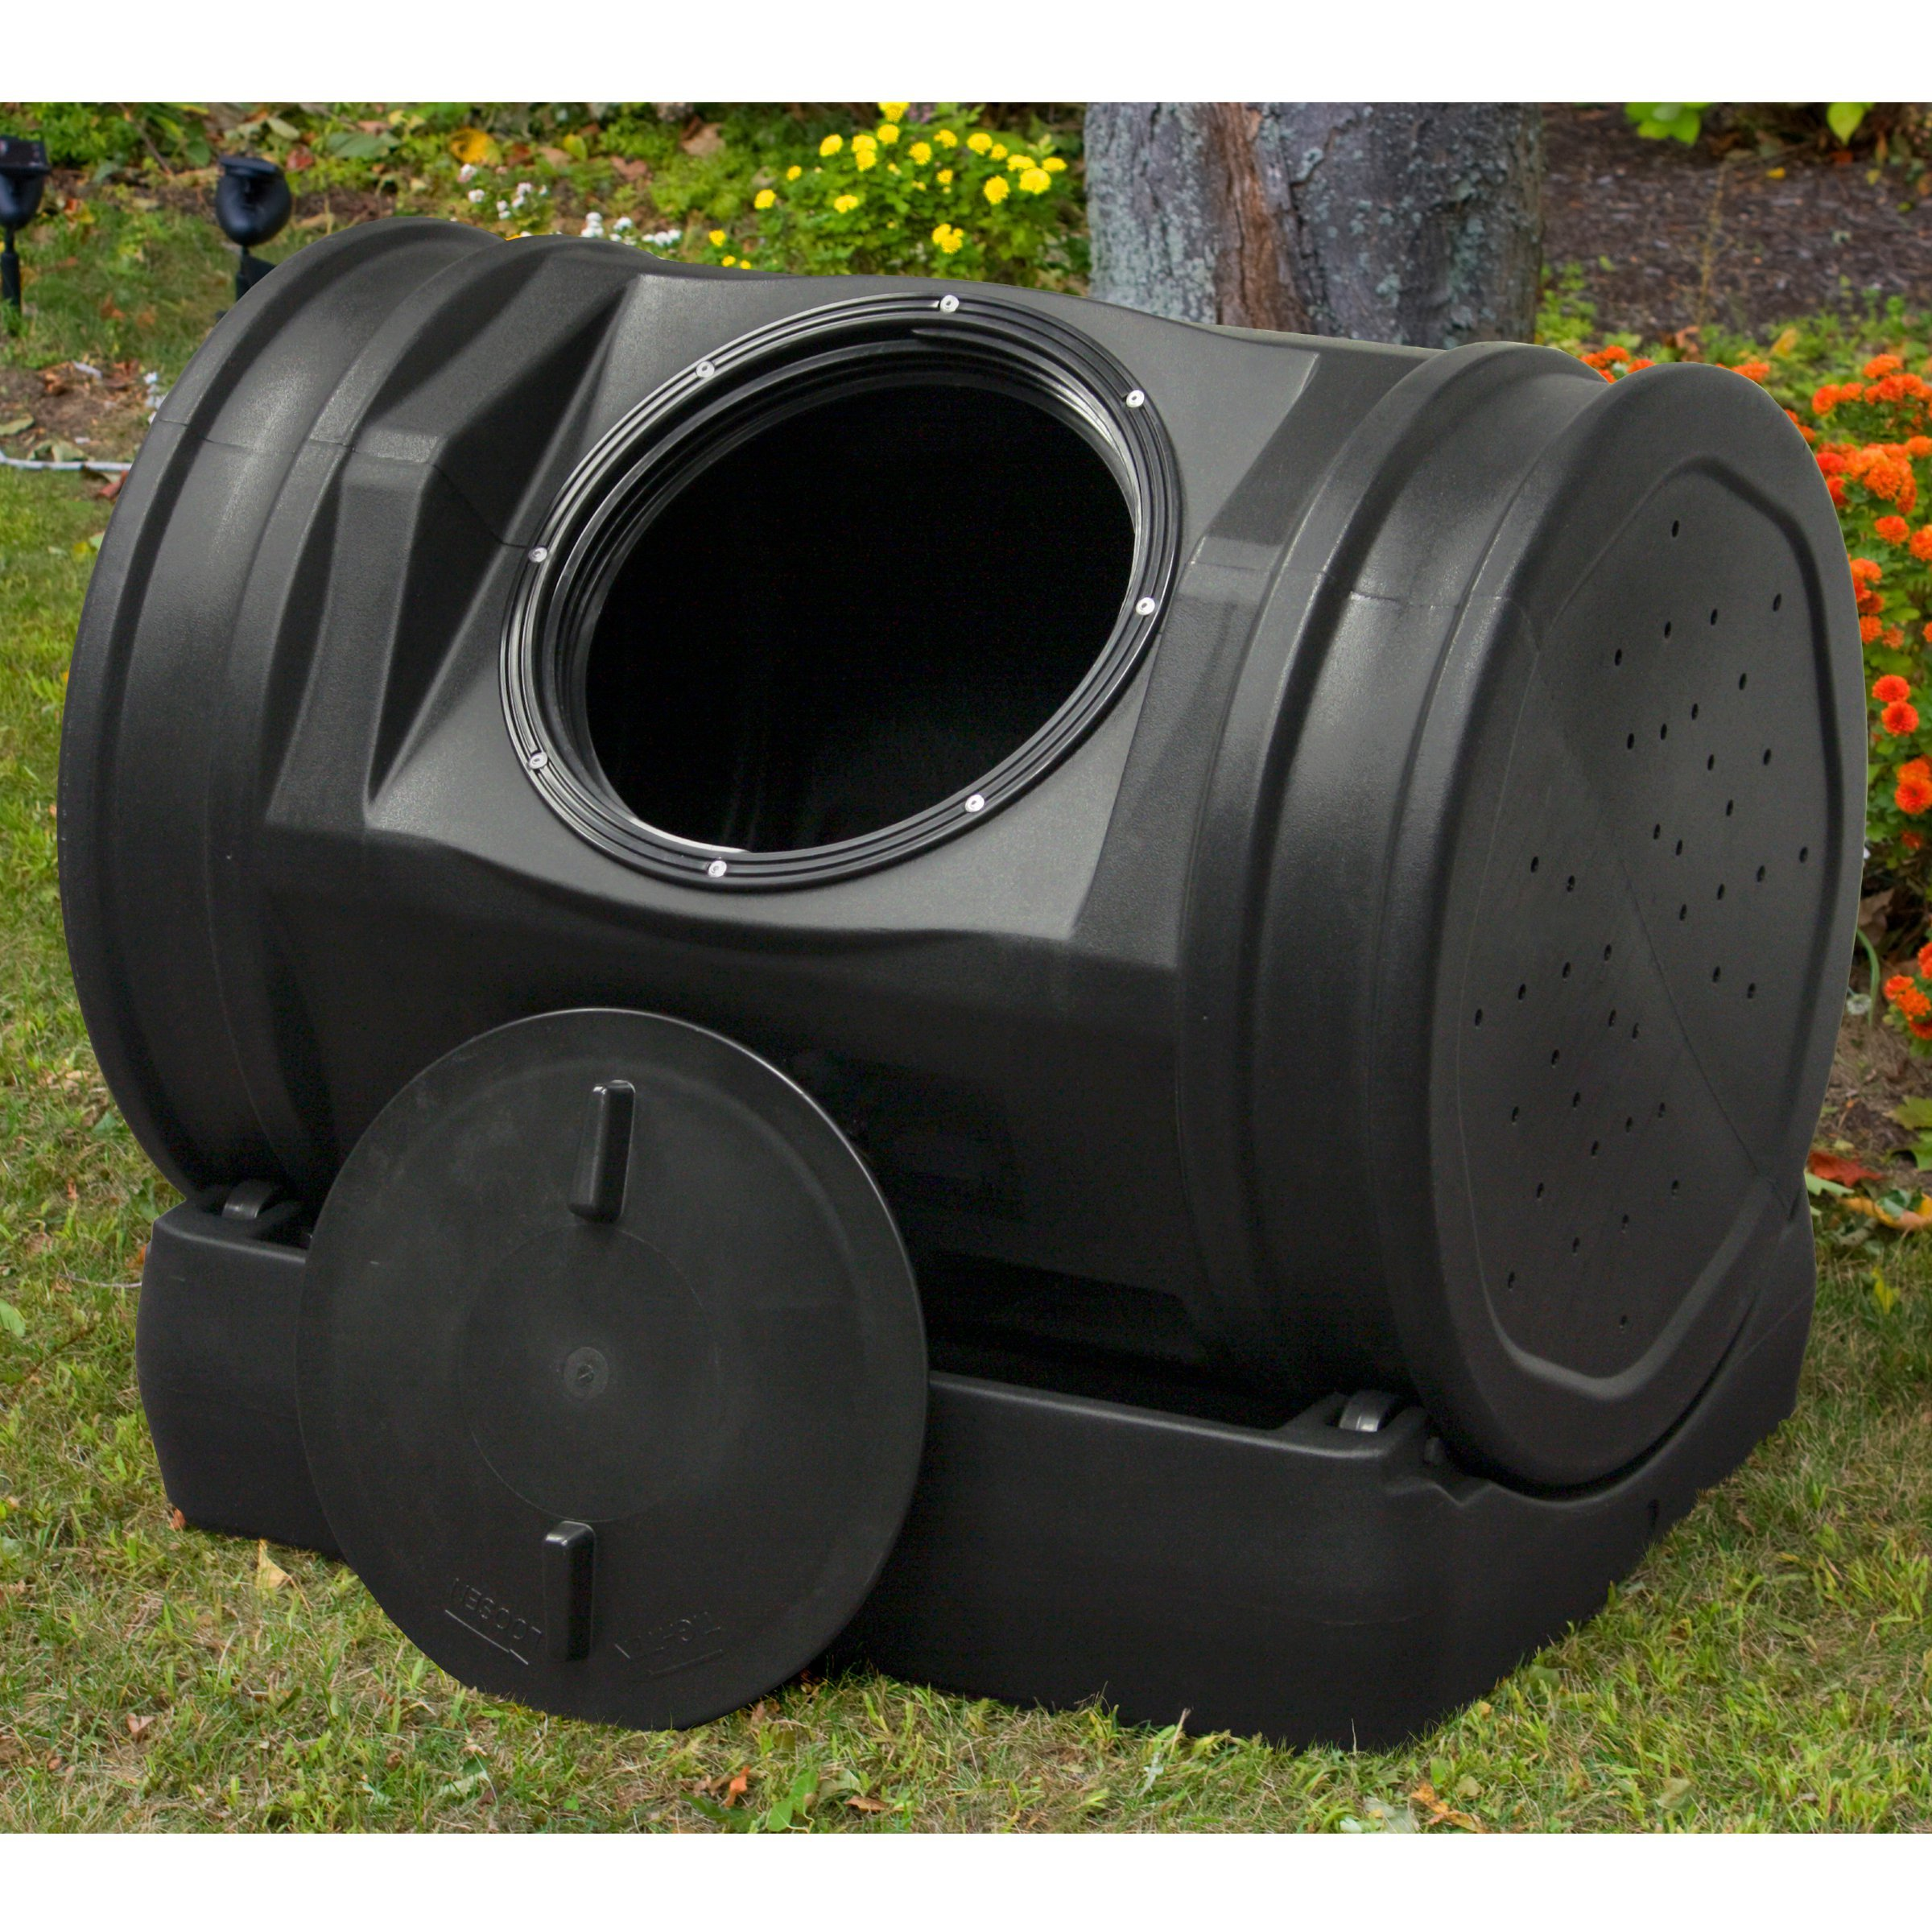 Compost Tea Tumbler Bin Backyard Garden- 52 Gallon 7 Cubic Feet Made SWith 100% Recycled Plastic For Strength Durability - Adjustable Air Vents- Makes Compost In Just 2 Weeks- Lighweight, Efficient by Good Idea